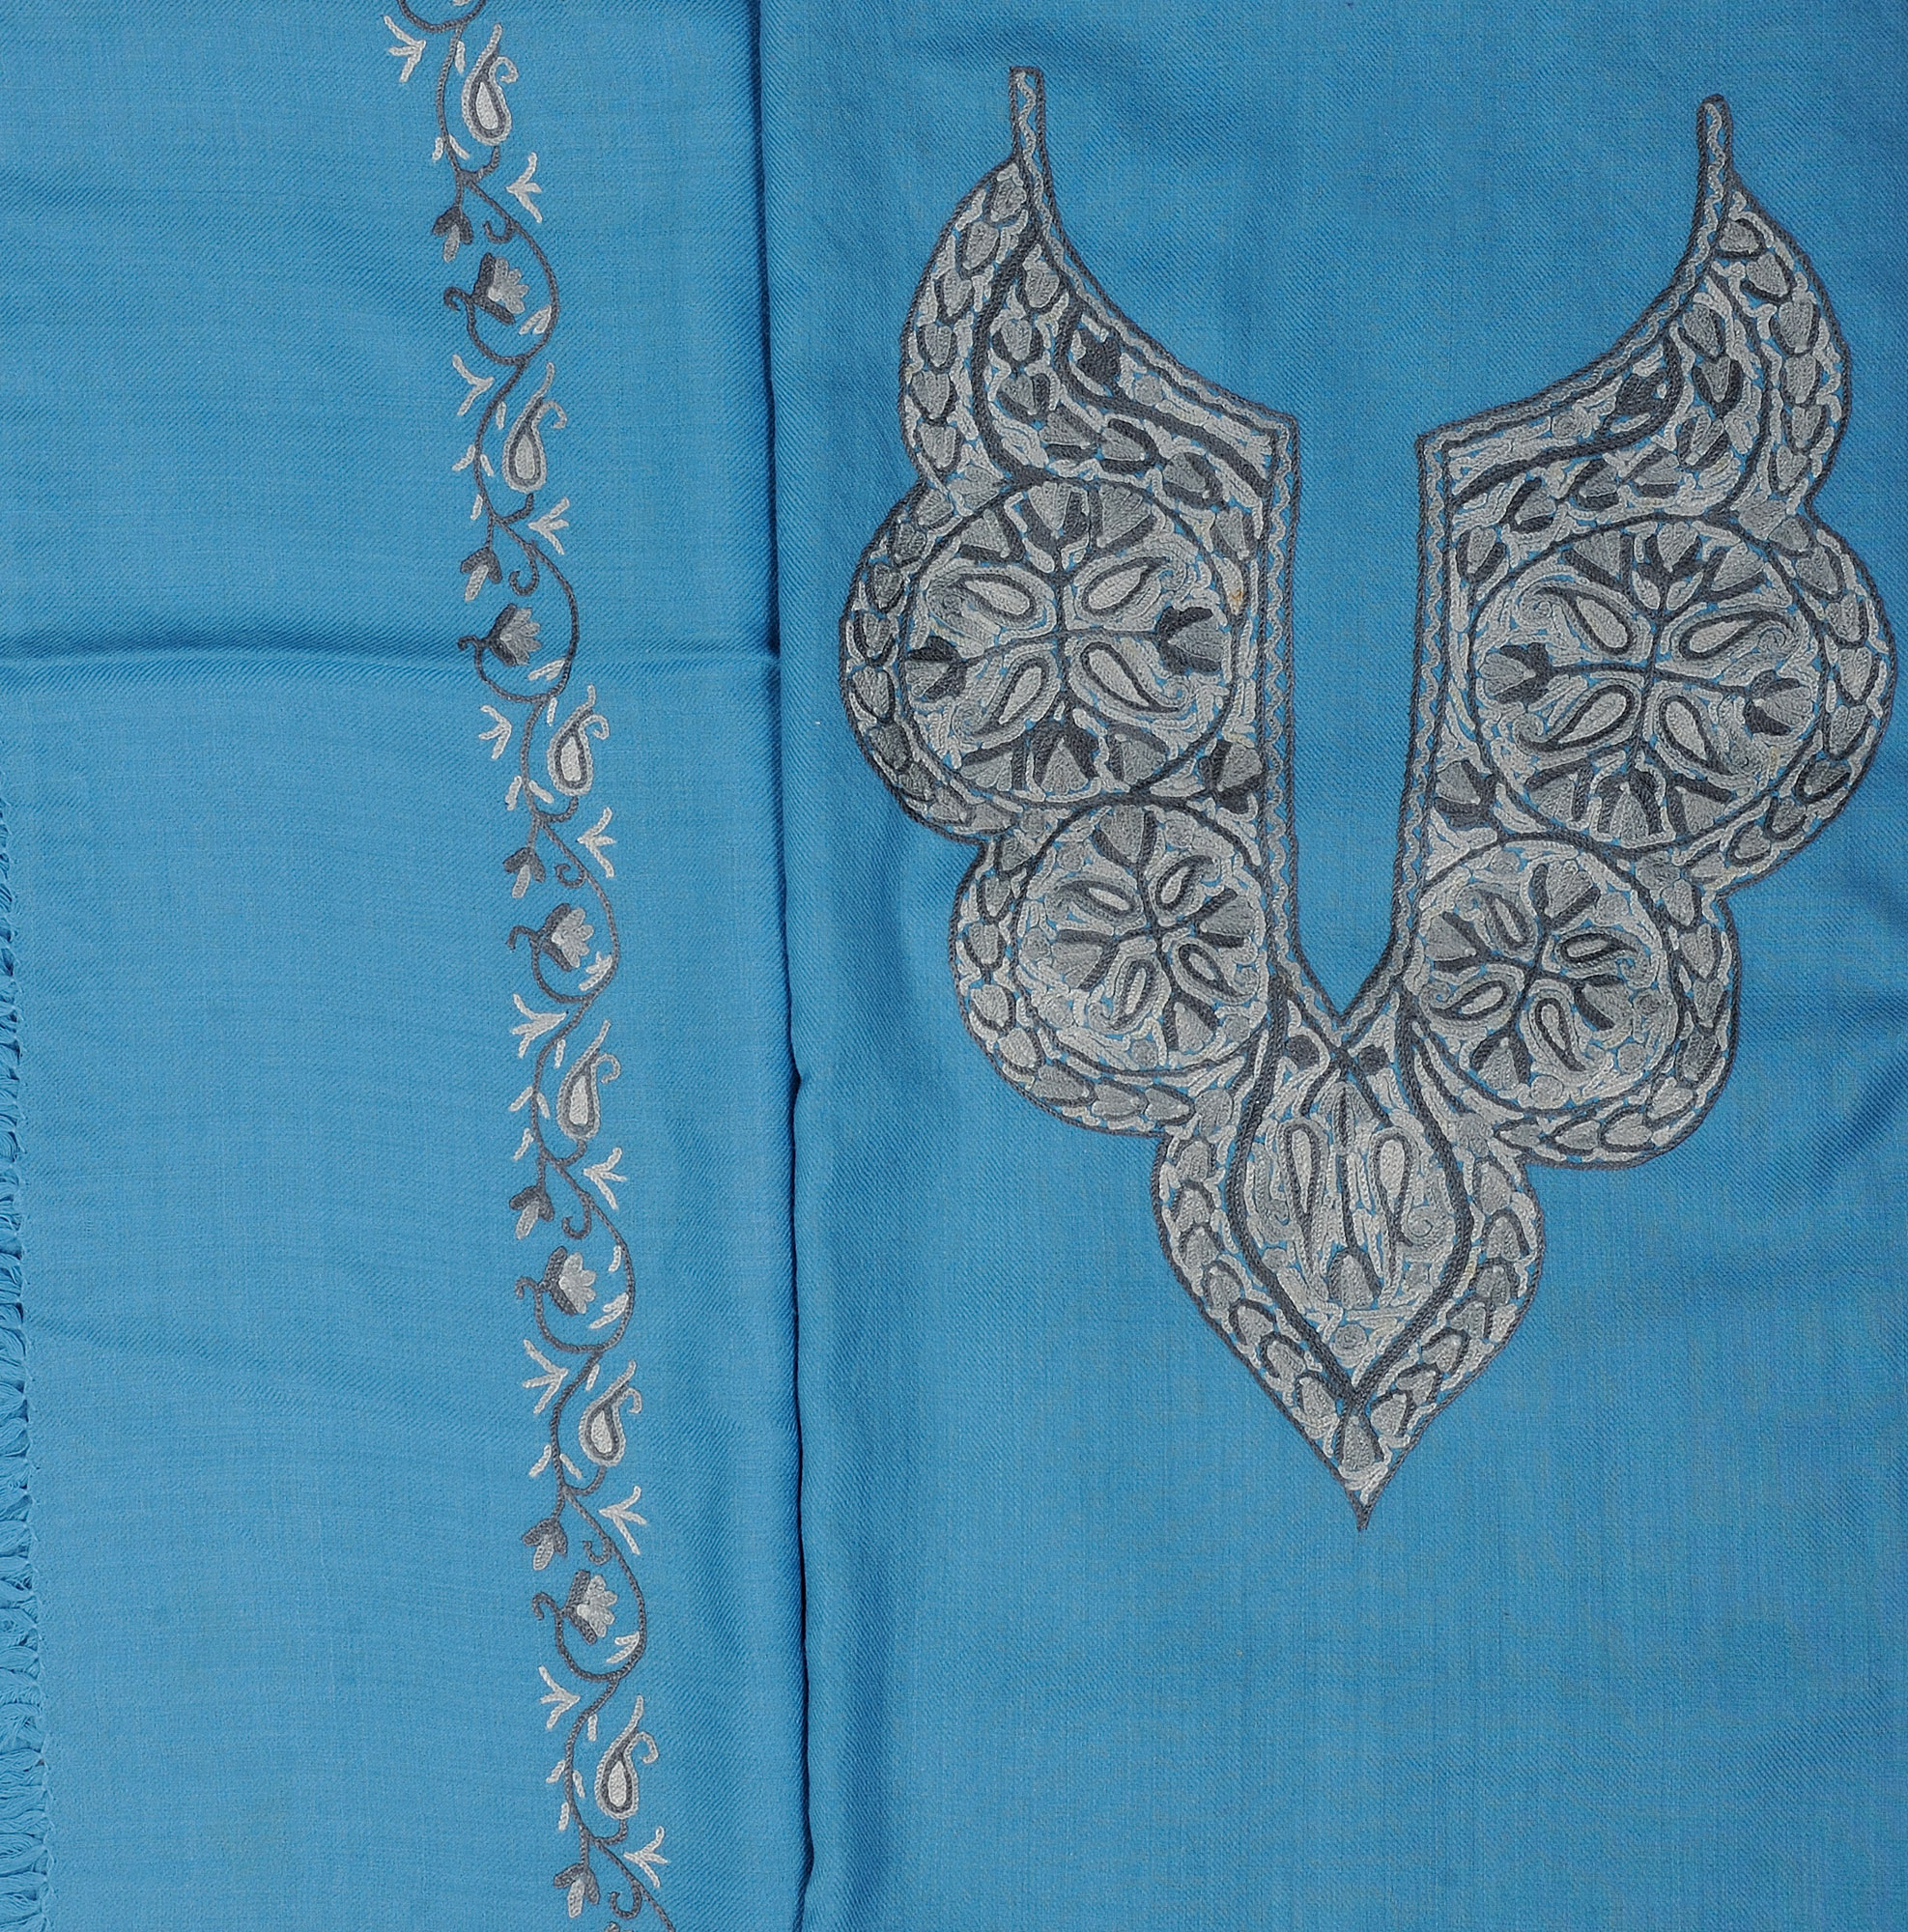 Ethereal blue salwar kameez fabric from kashmir with hand